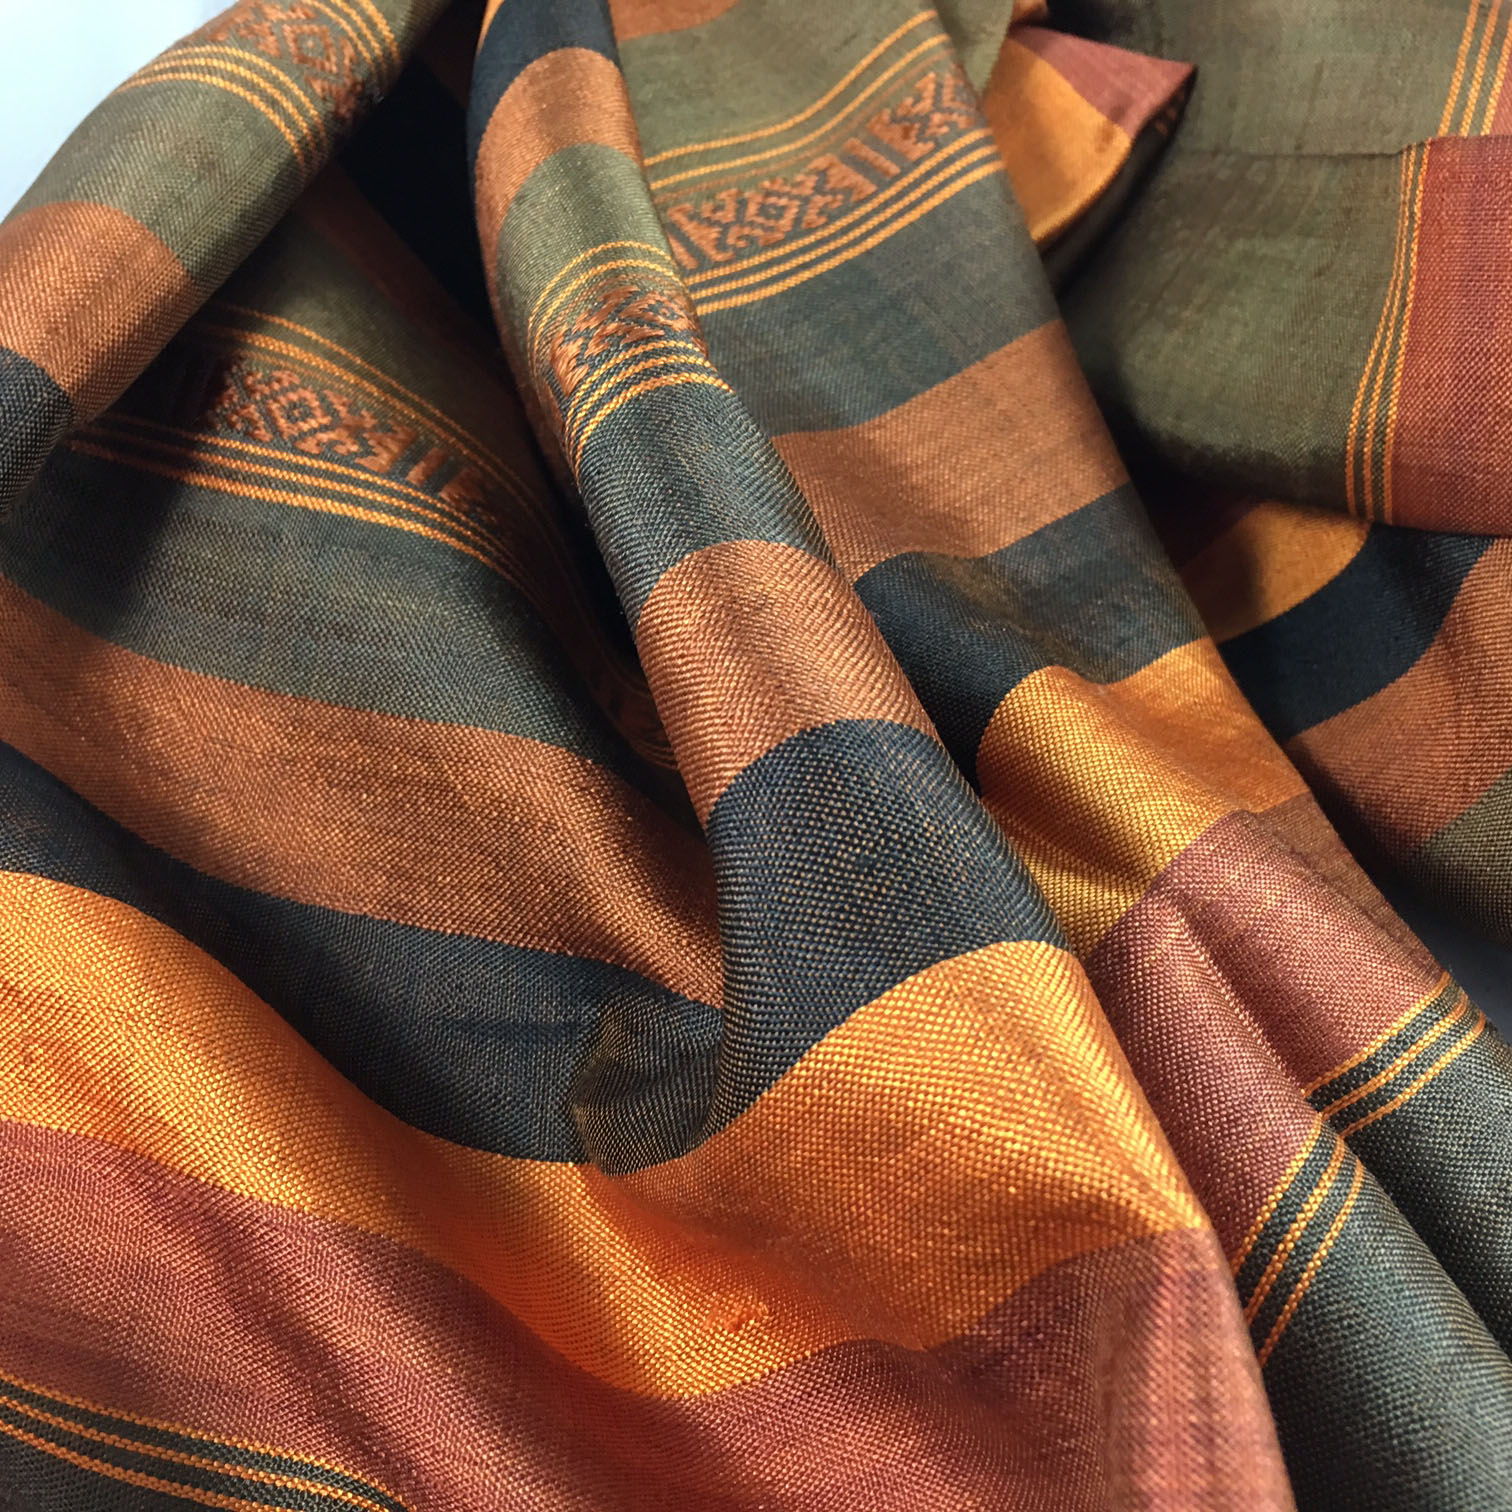 Silk Scarf From Chiang Mai, Thailand